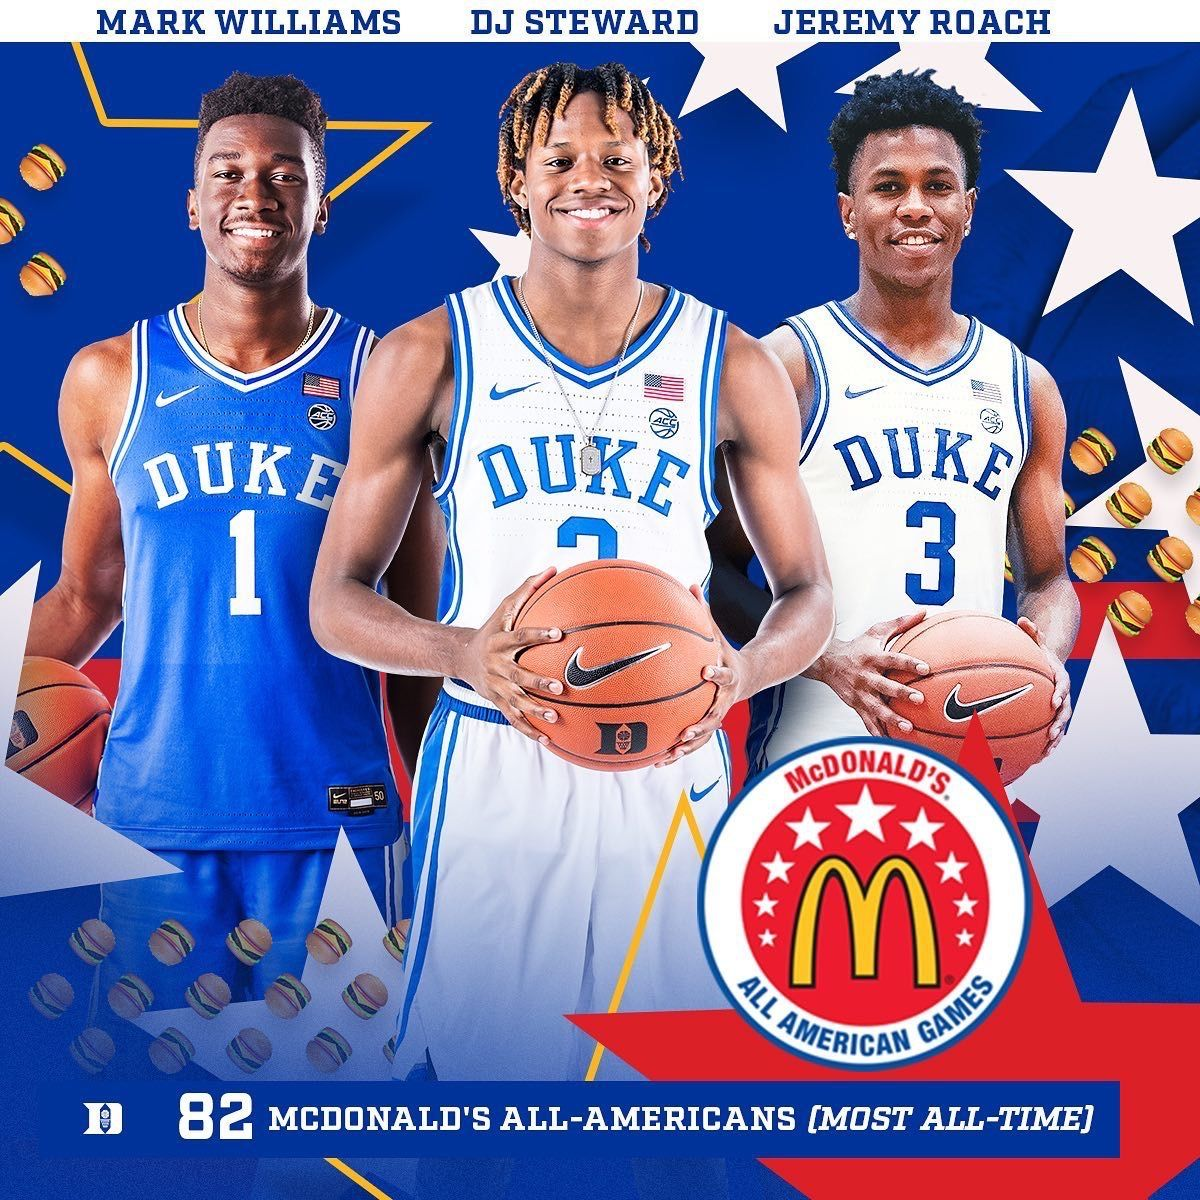 Mark Williams Dj Steward And Jeremy Roach In 2020 Mark Williams American Games Duke Blue Devils